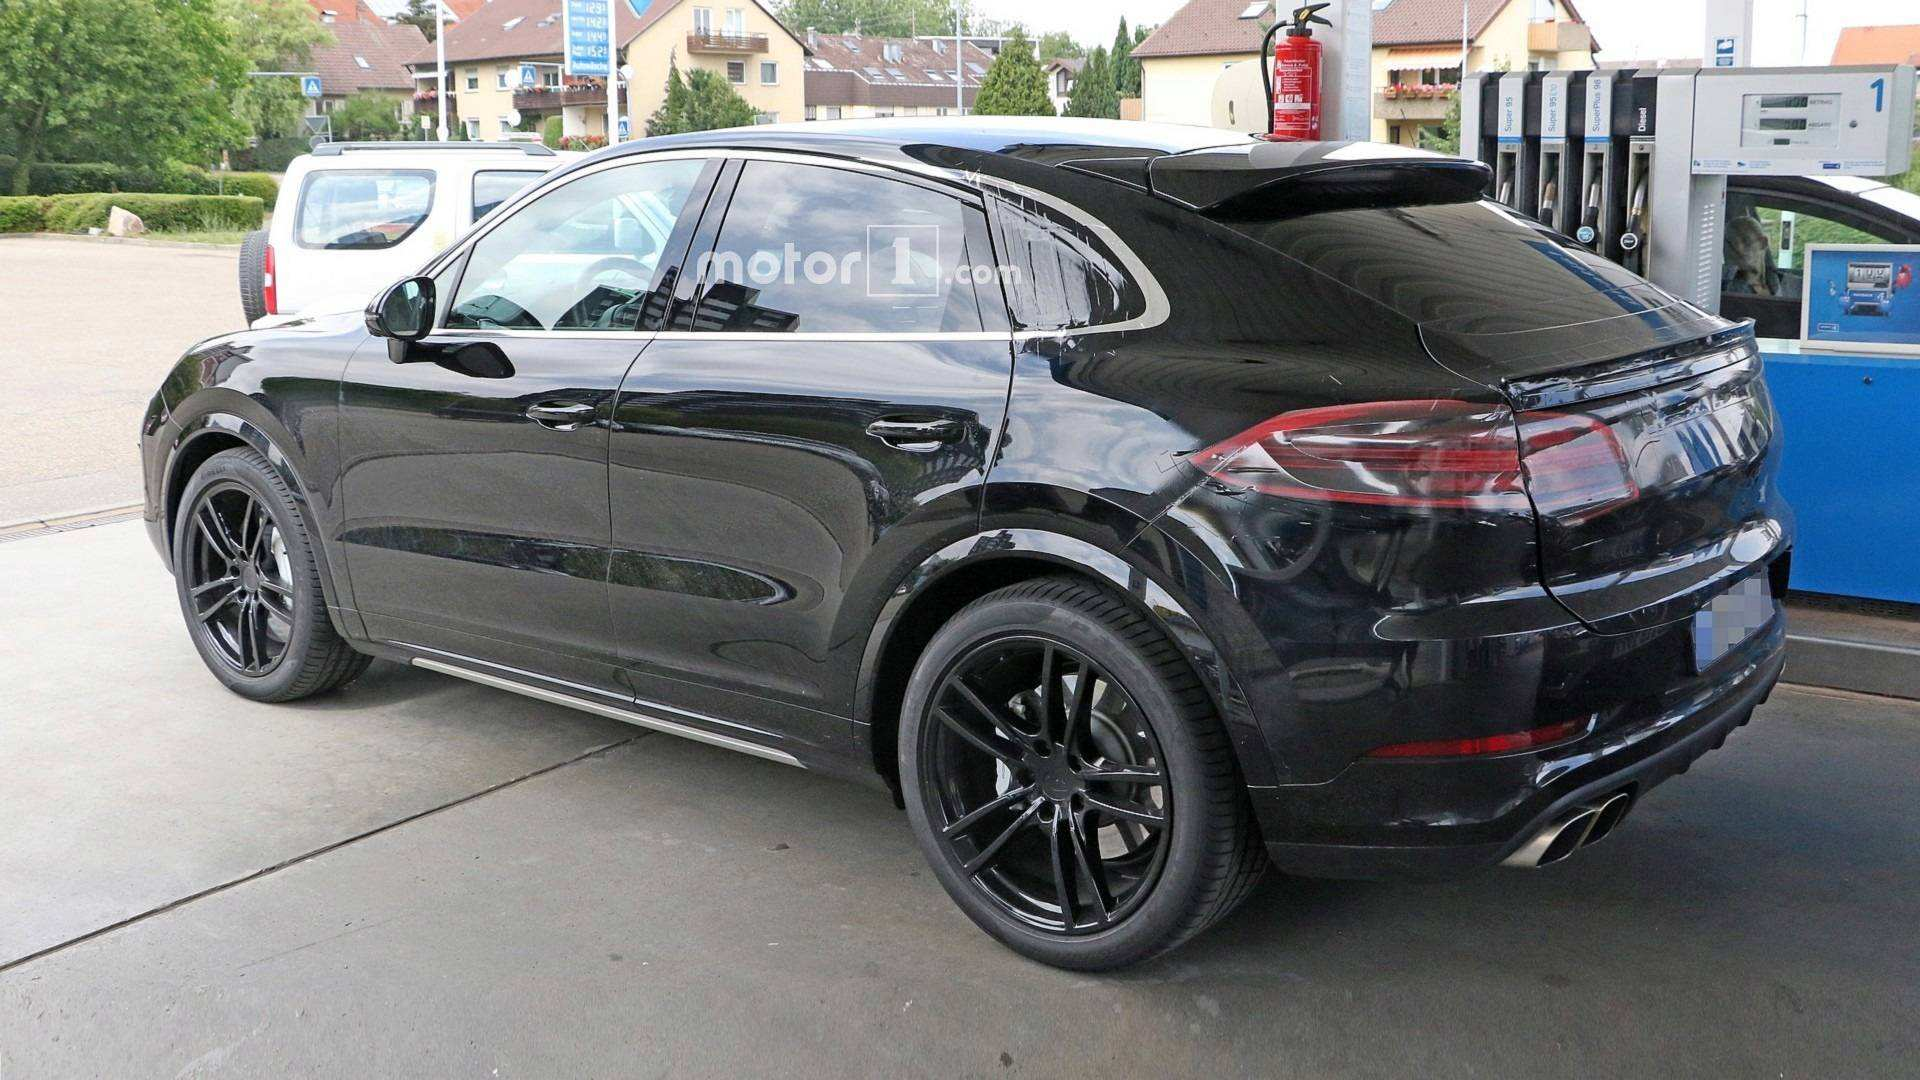 55 Gallery of 2020 Porsche Macan Turbo Performance and New Engine by 2020 Porsche Macan Turbo